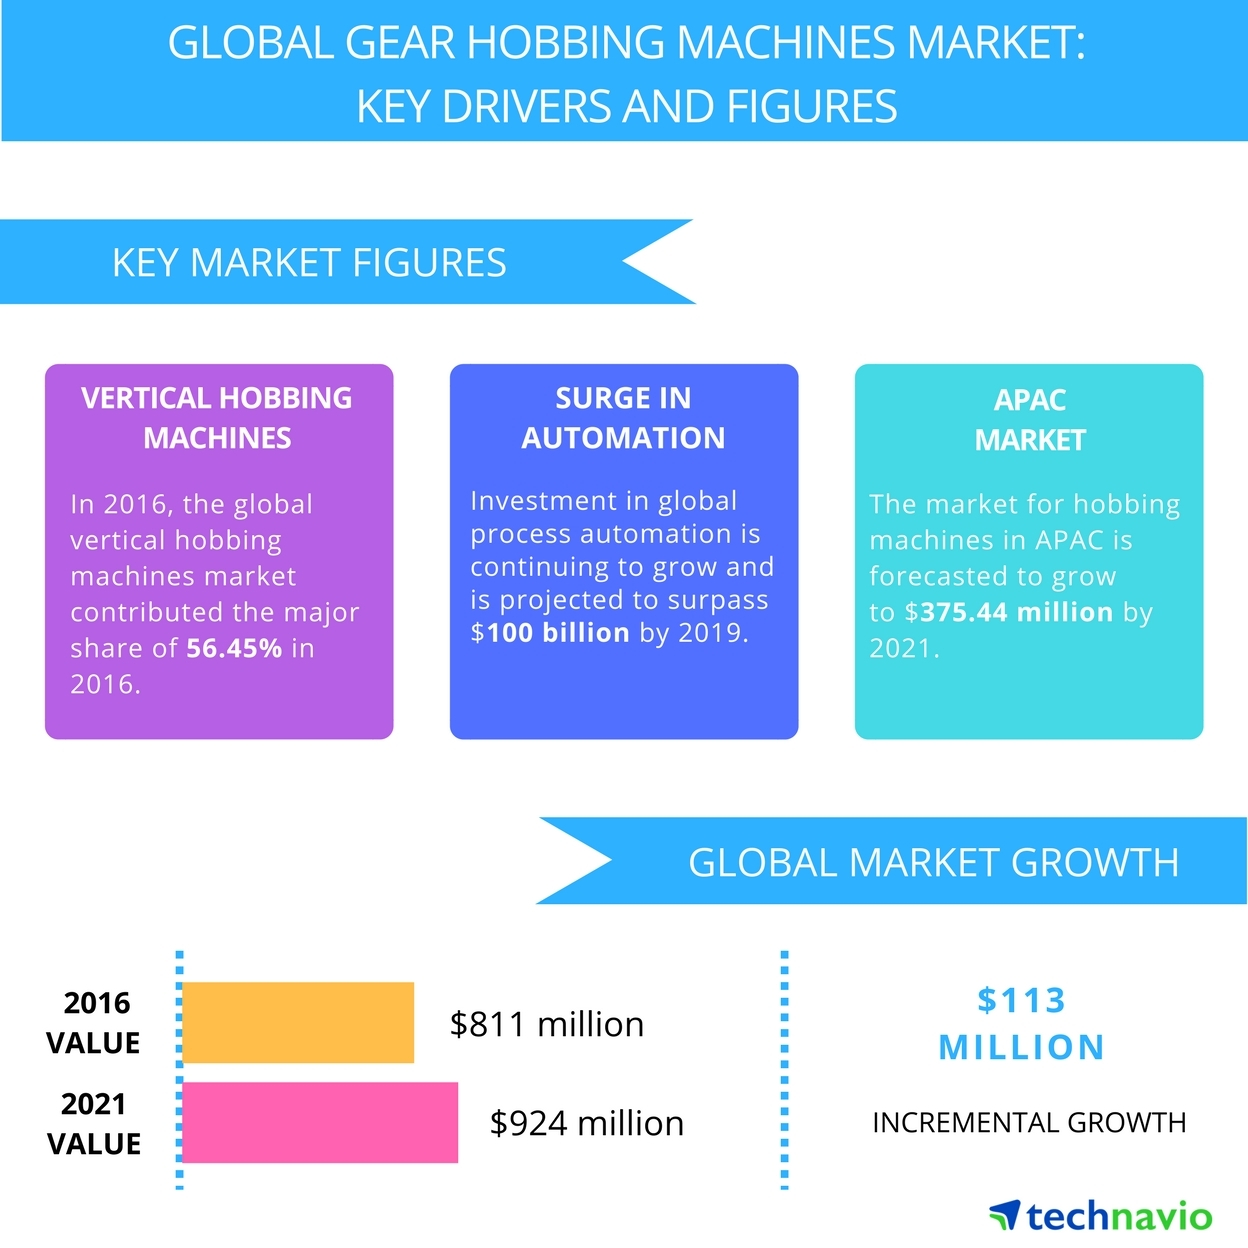 Technavio has published a new report on the global gear hobbing machines market from 2017-2021. (Photo: Business Wire)